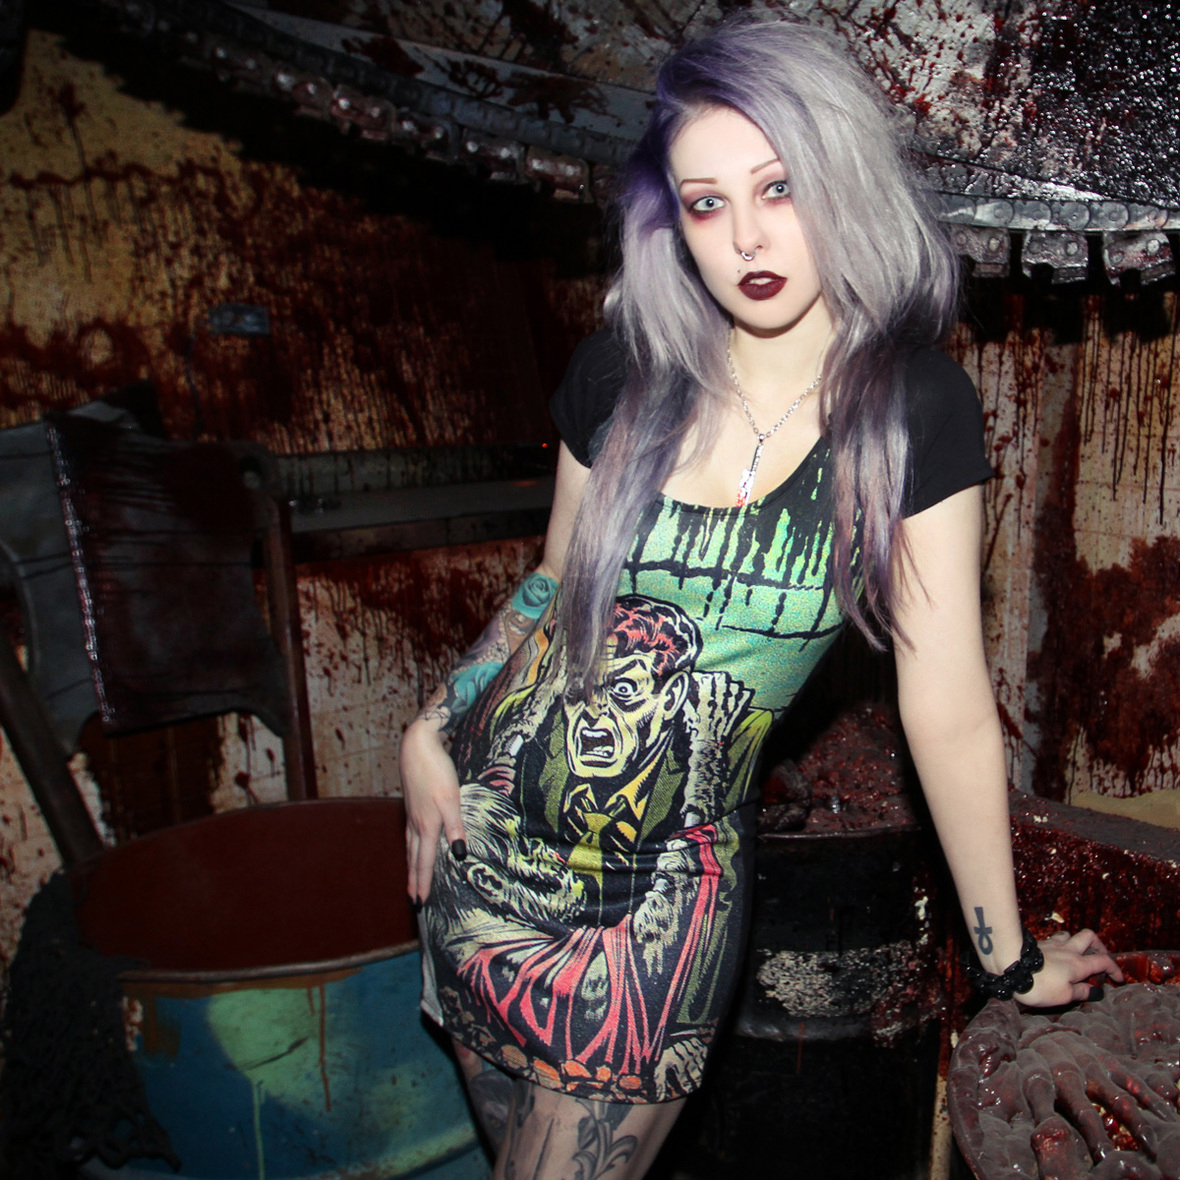 Tales From the Crypt Gravebuster Dress by Kreepsville 666 - SALE sz XS only